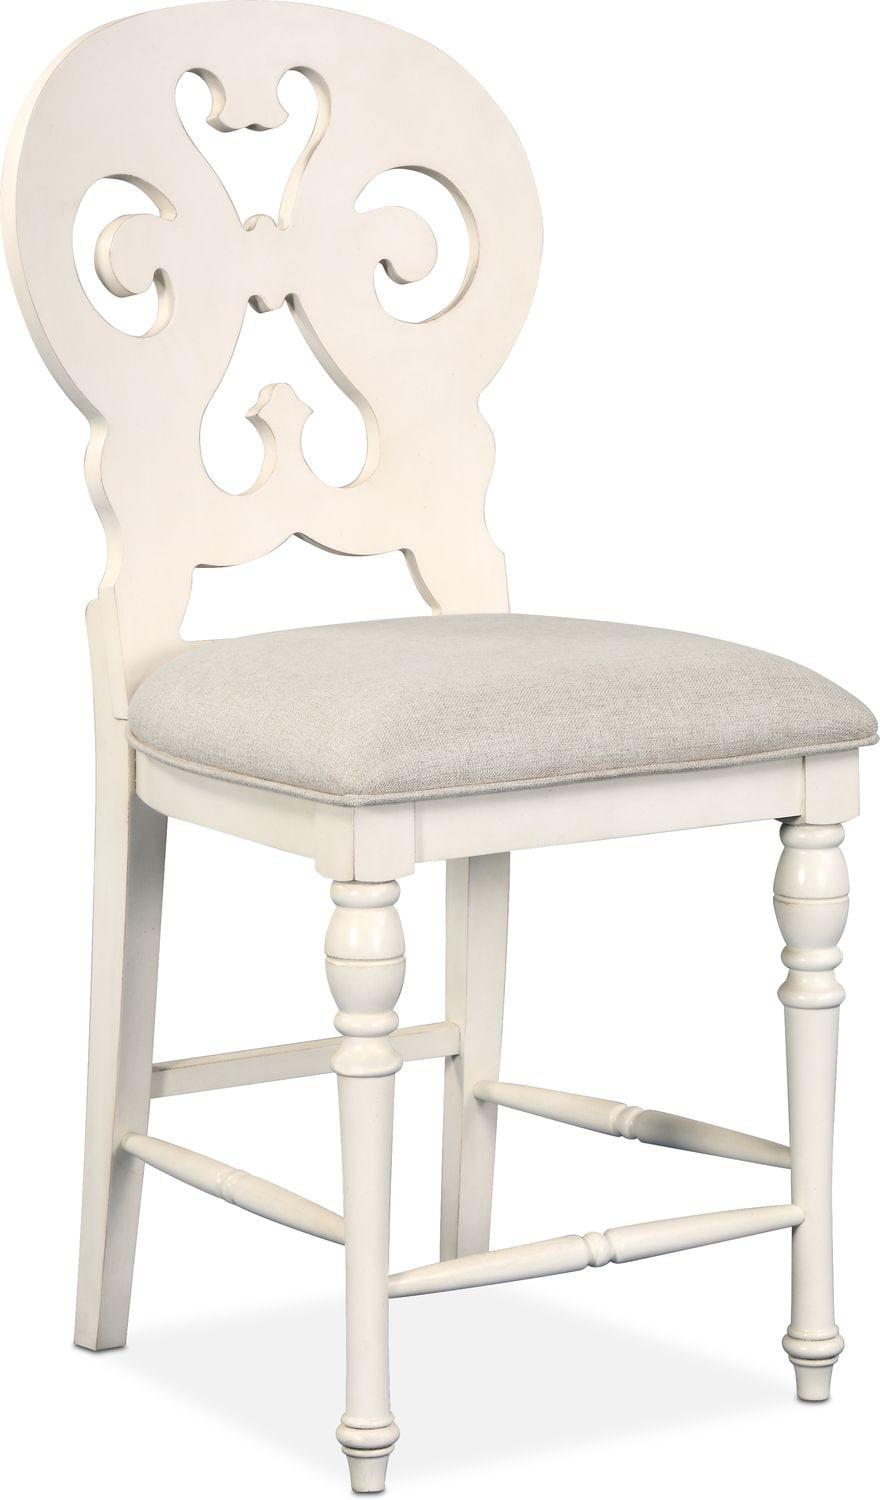 counter height chairs with back kid folding charleston scroll stool white american click to change image